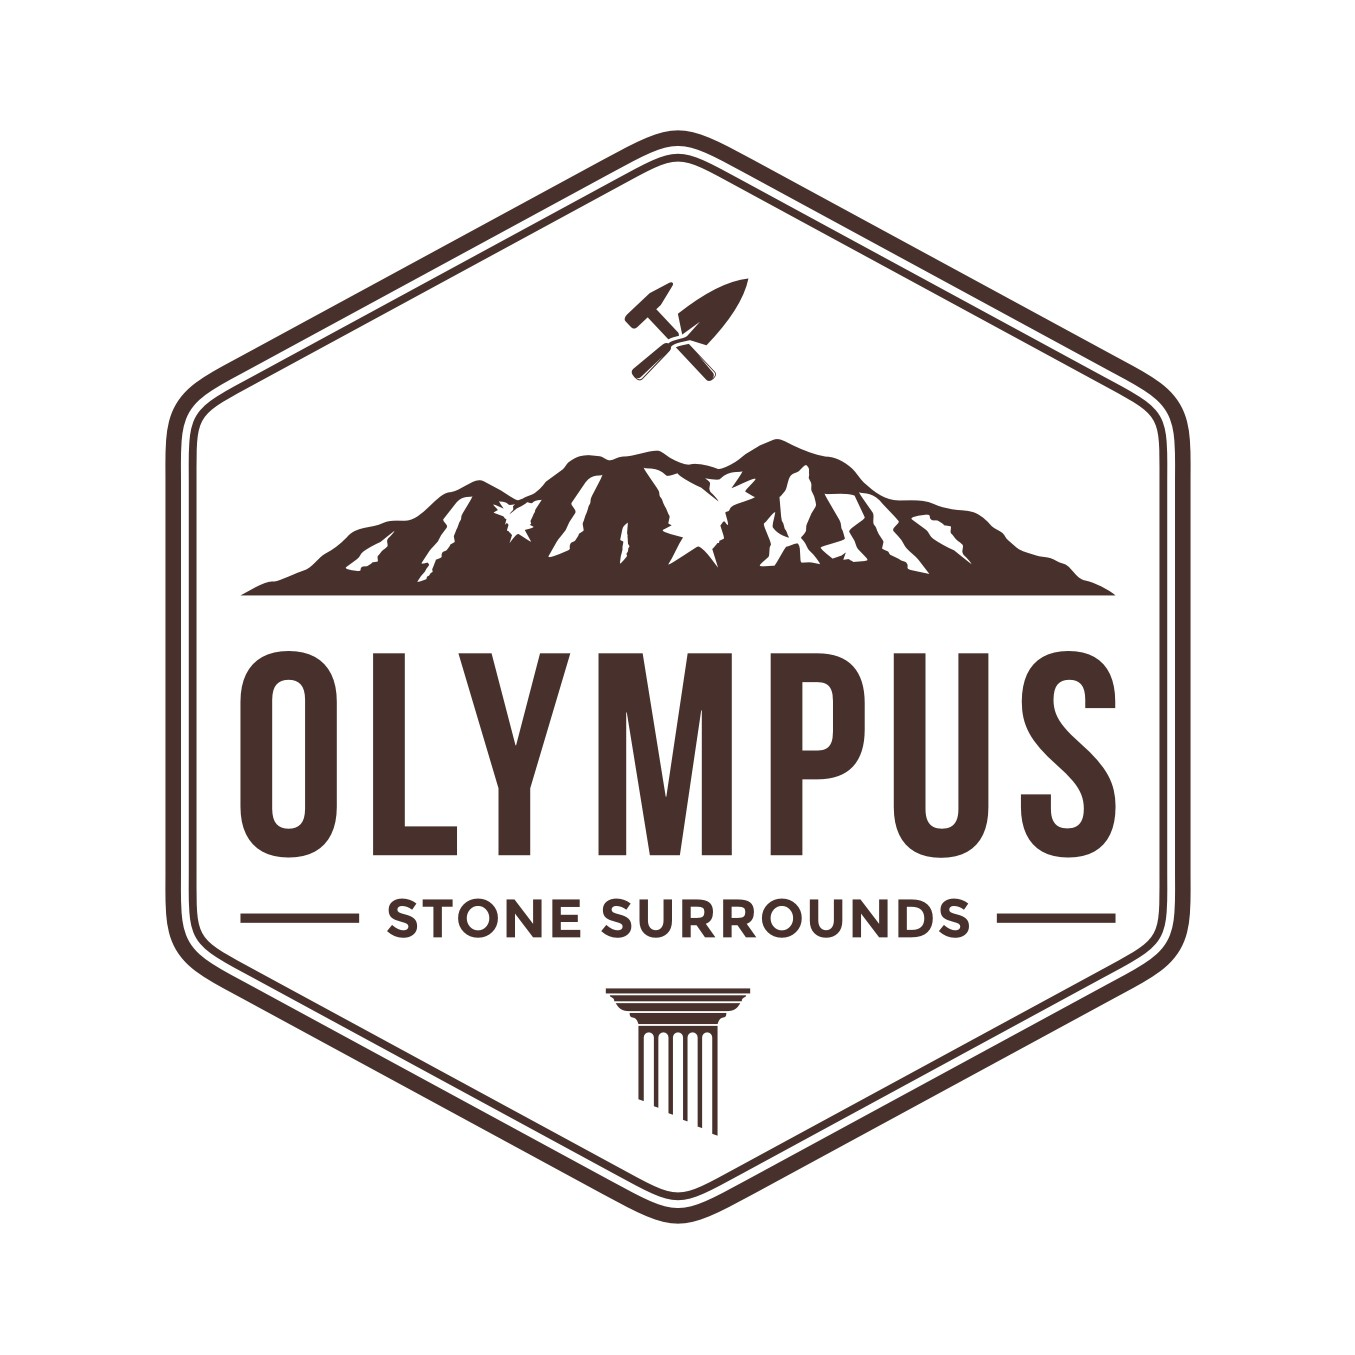 We craft traditional stone products w/ a modern twist. Craft us a traditional logo w/ a modern twist